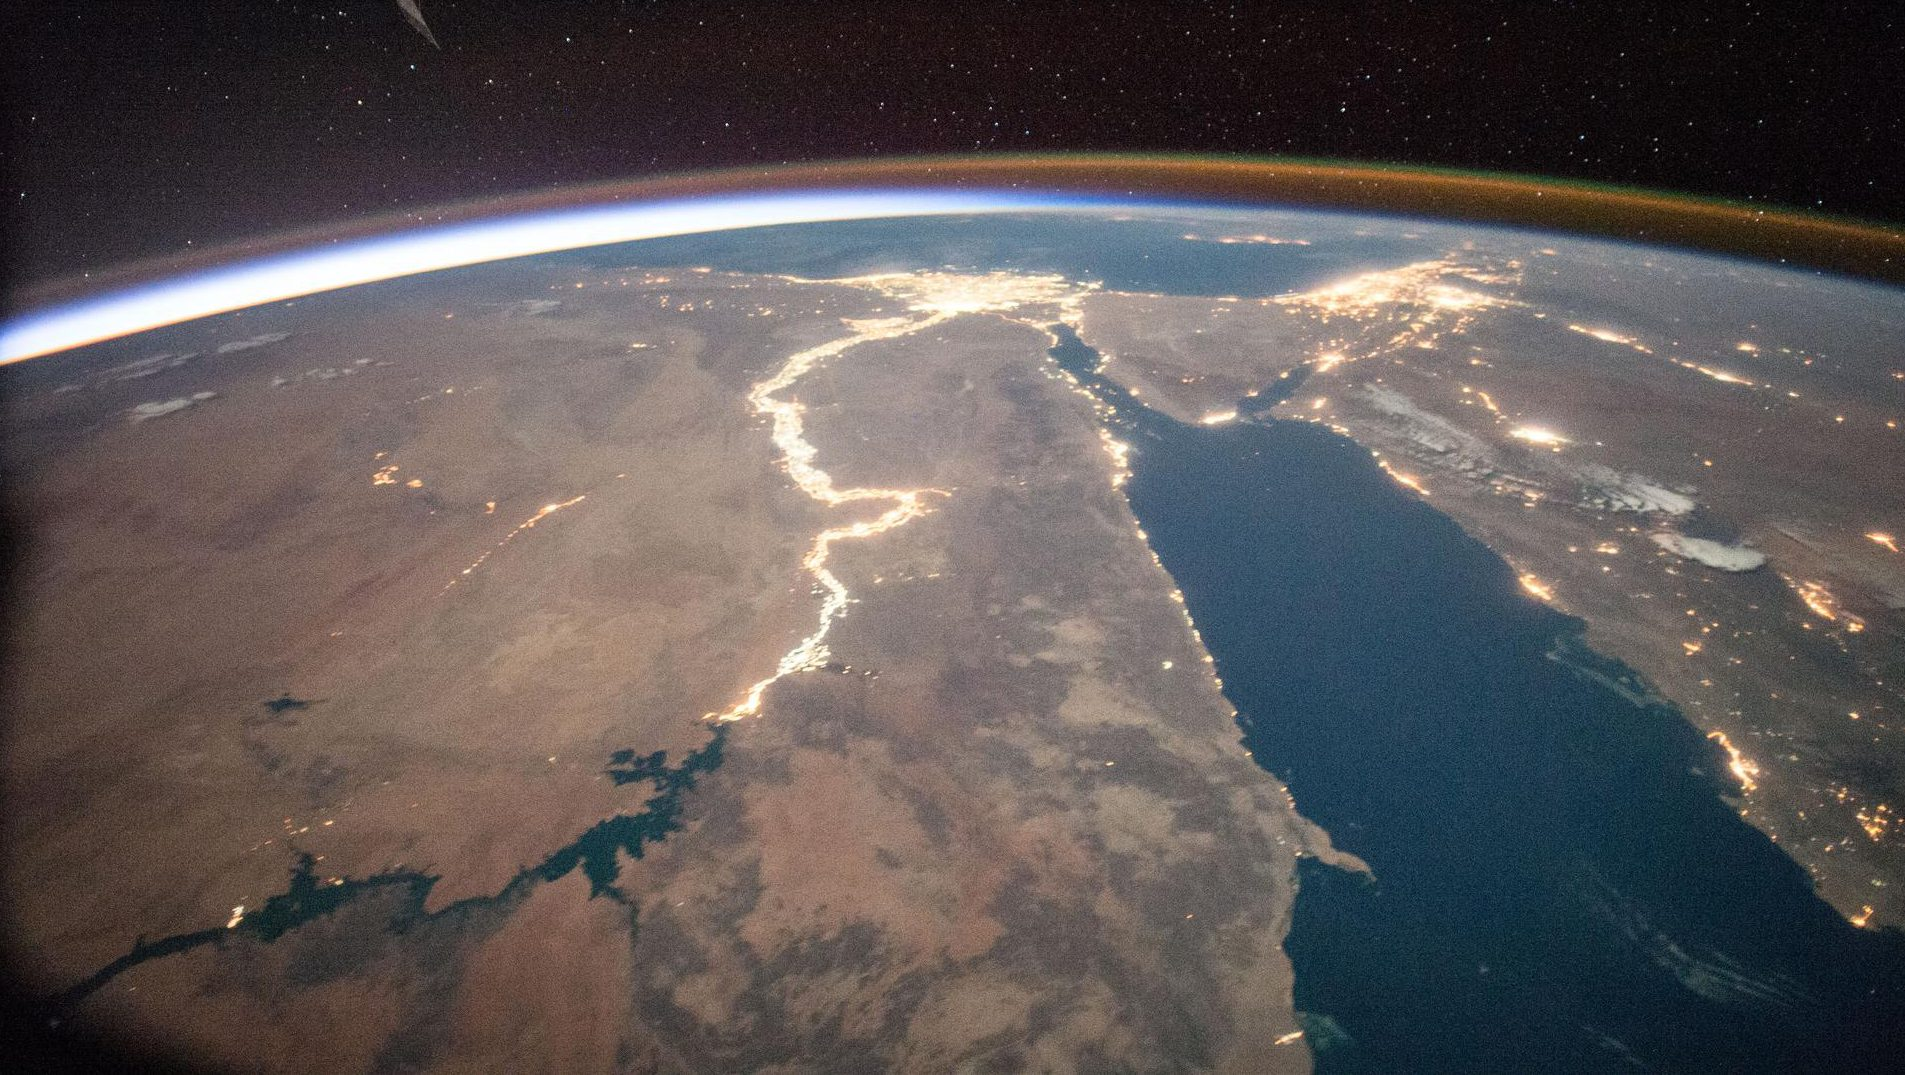 The Nile river in Africa sparkles in this night observation taken by NASA astronaut Scott Kelly on July 27, 2015.